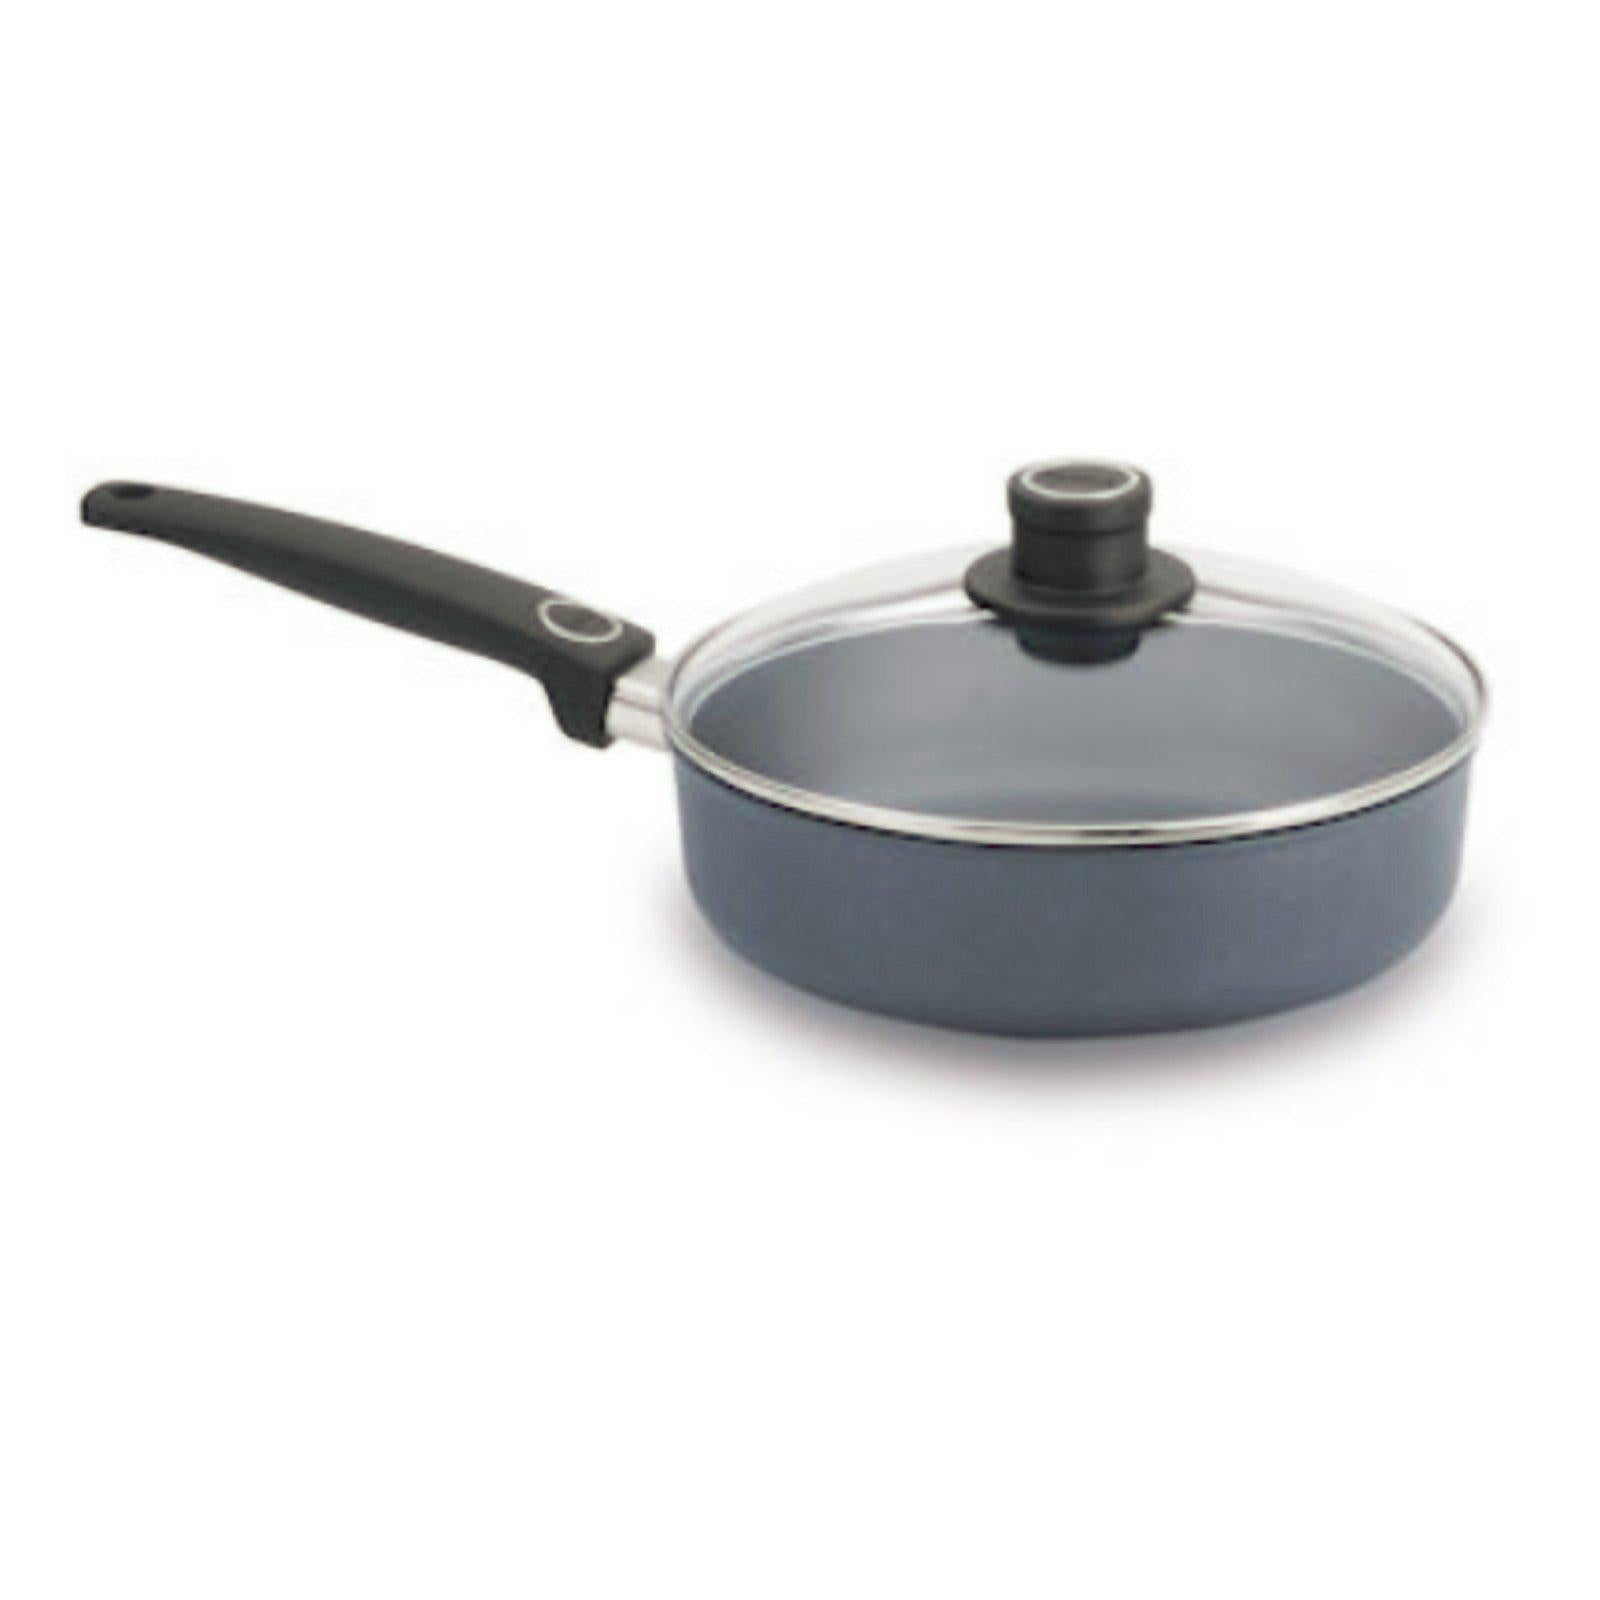 Woll Saphir Lite 32 cm Induction Sauté Pan with Lid-Frying Pan-Chef's Quality Cookware